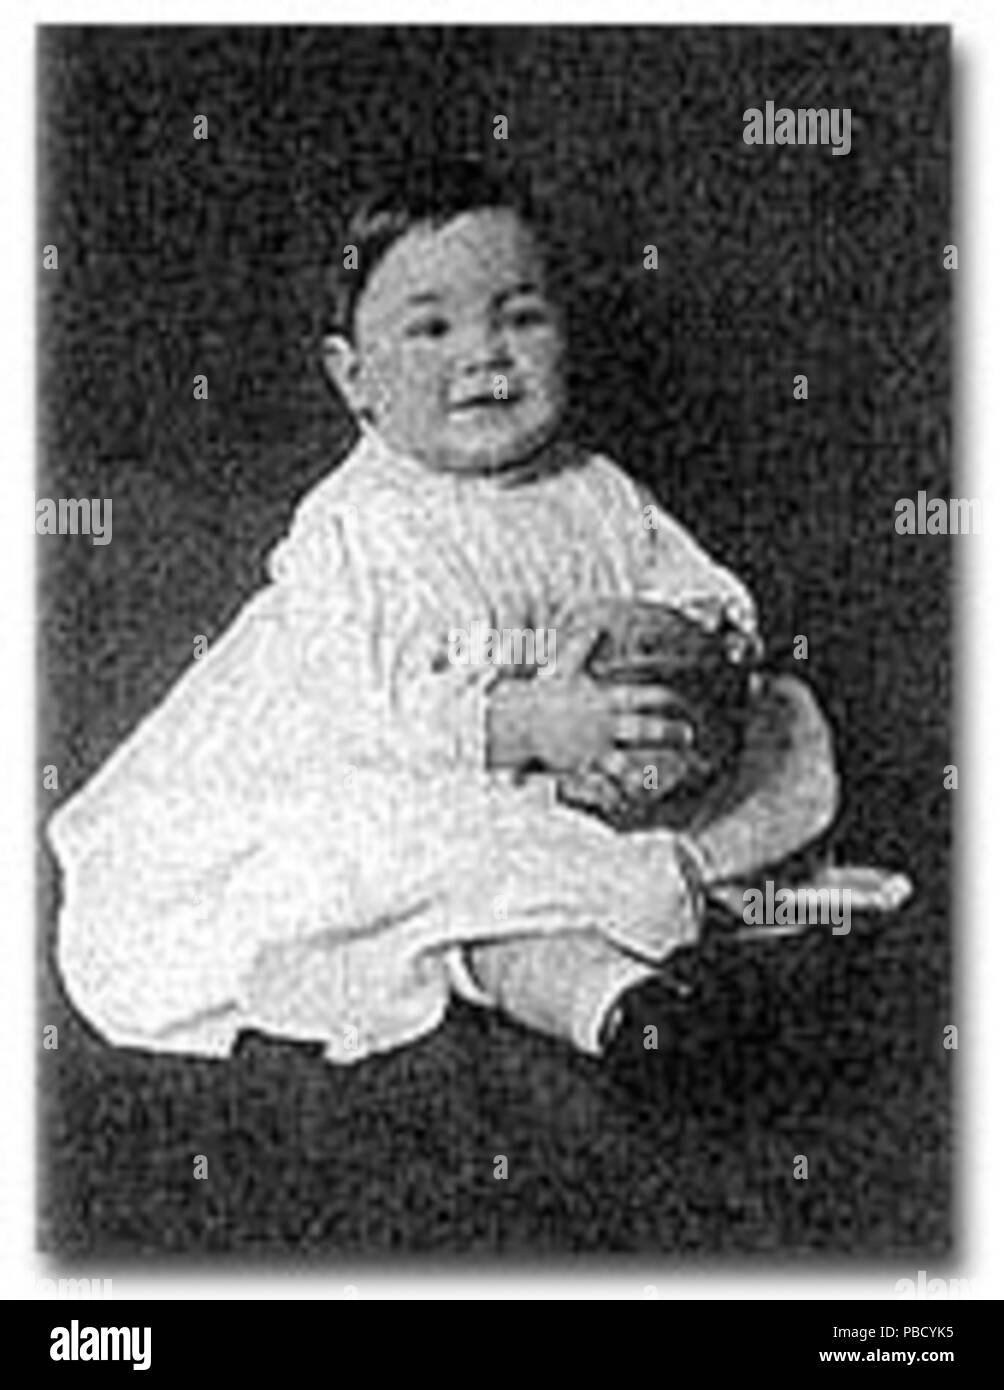 . English: Aurelia Henry Reinhardt as an infant . Original caption state the image was taken in 1897, although this is an apparent typographical error. Reinhardt was born in 1877. 1252 Reinhardtchild - Stock Image